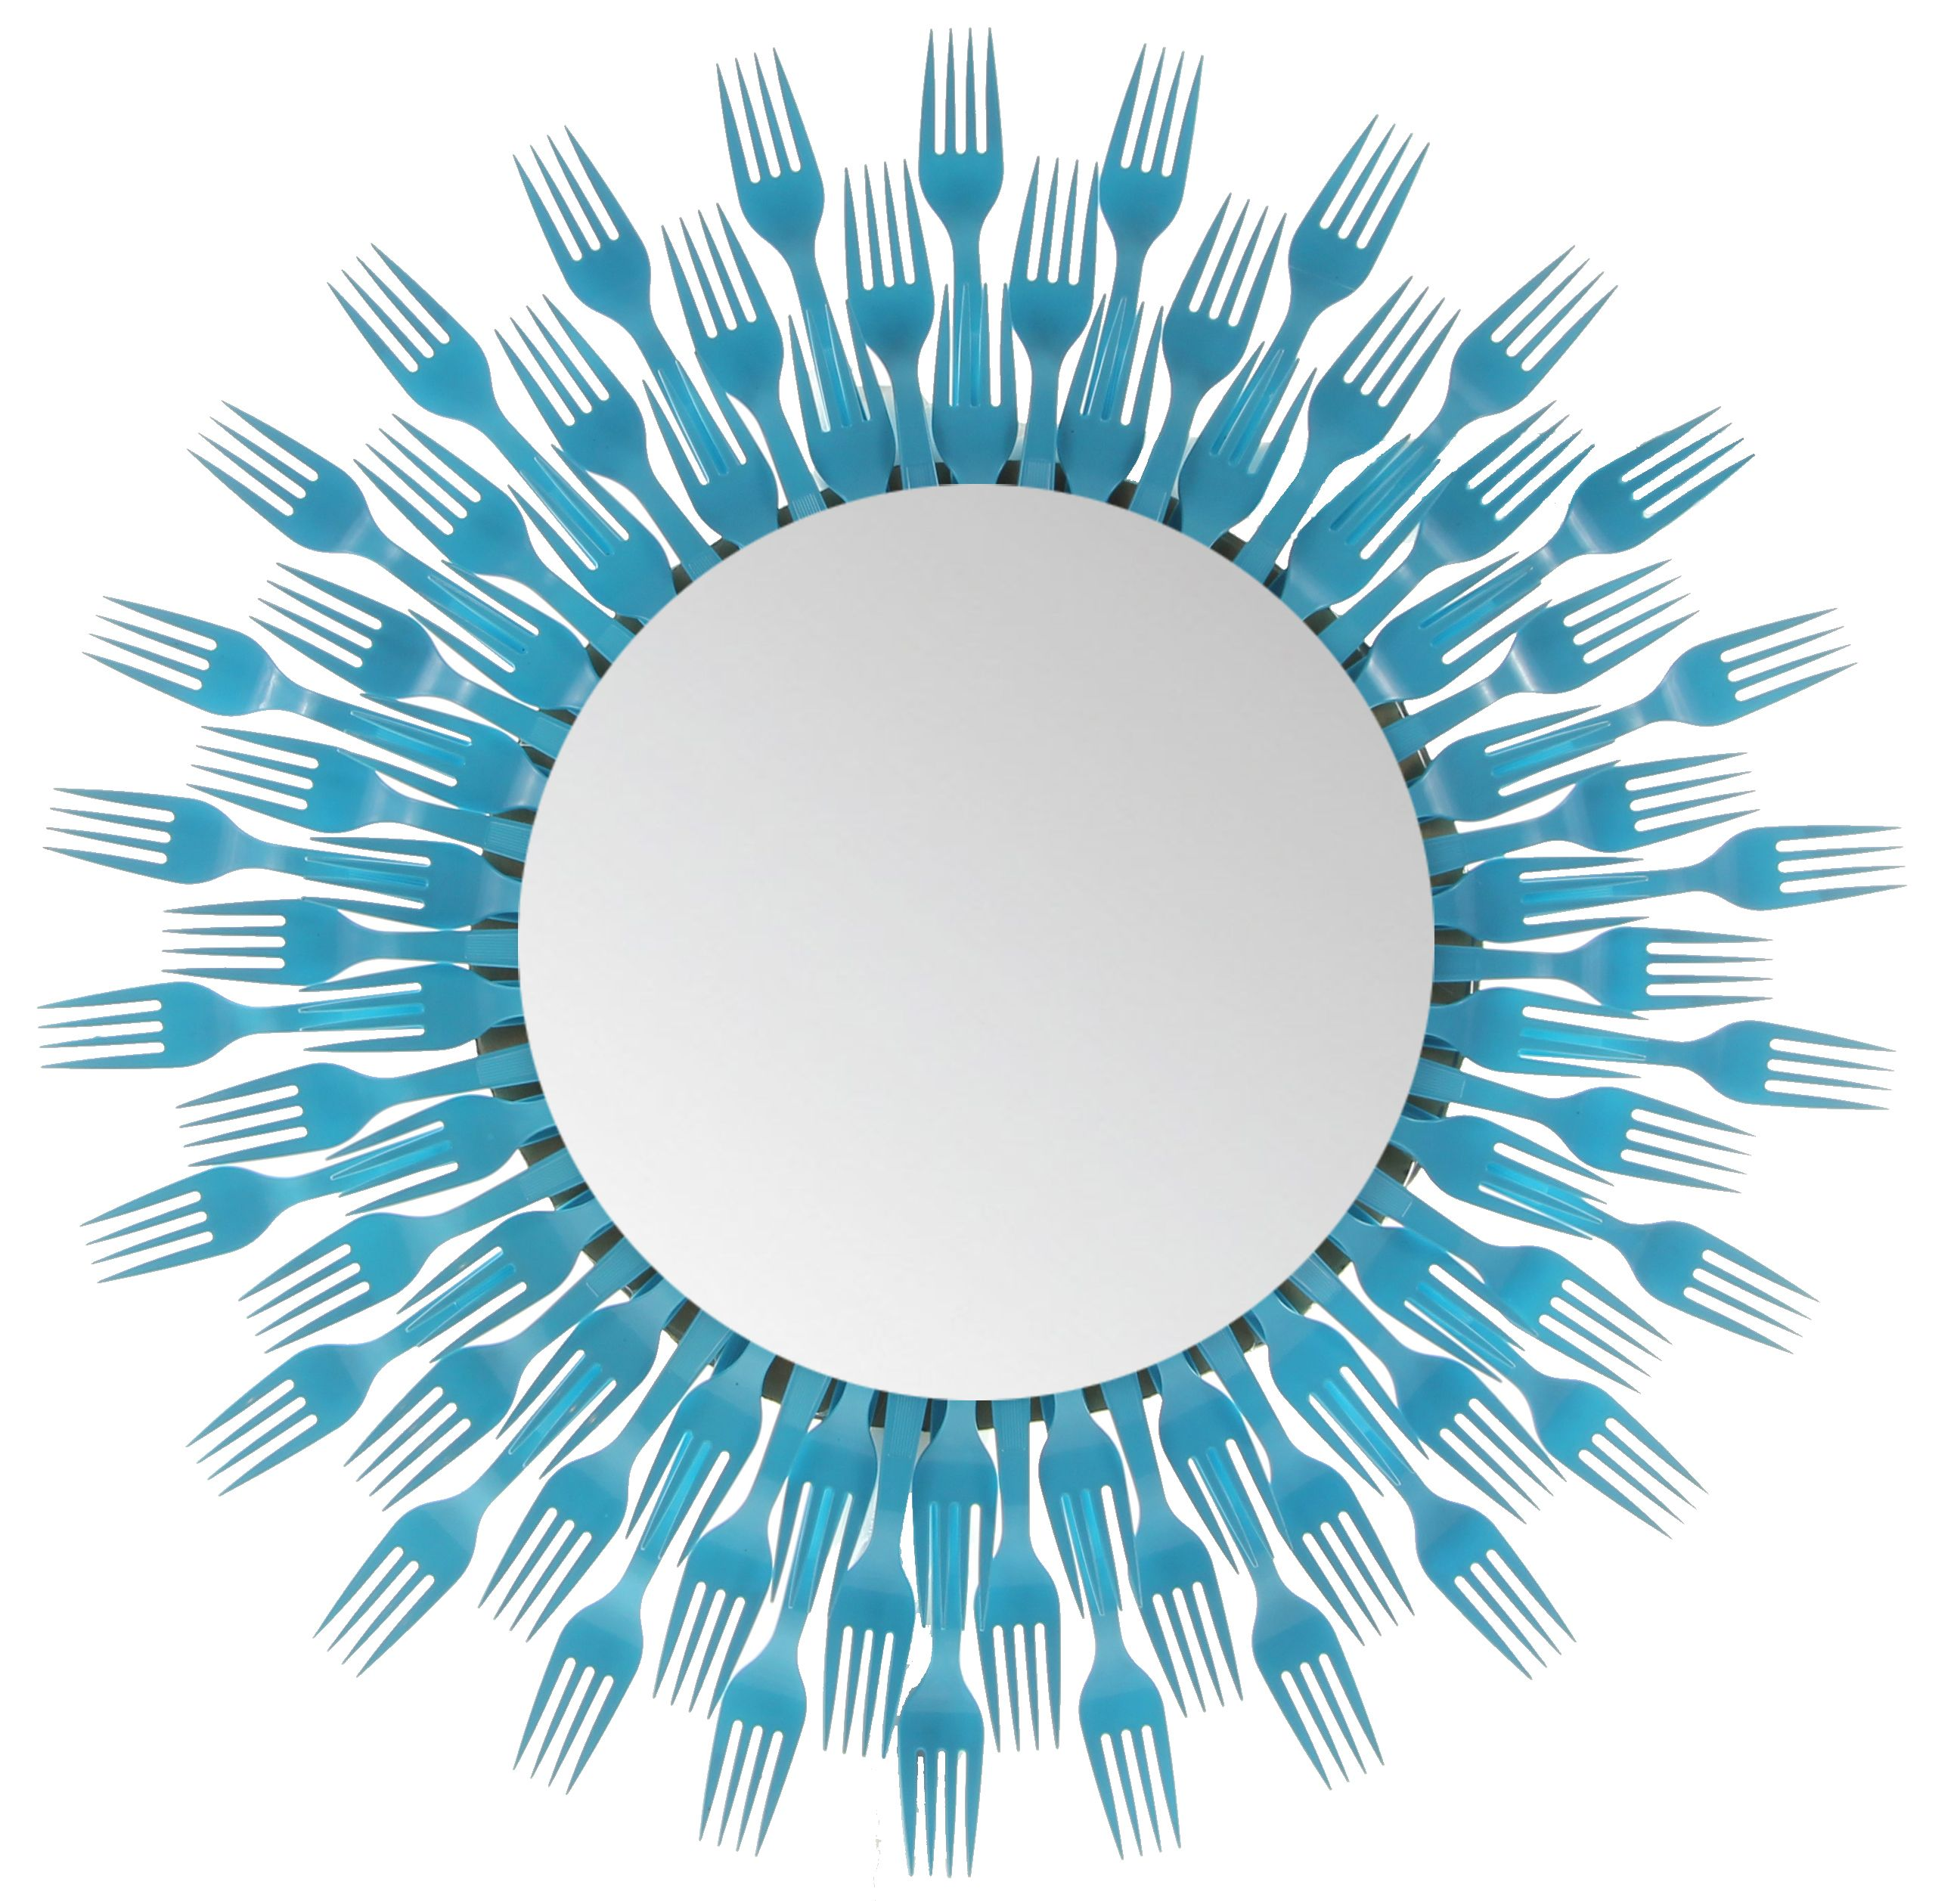 Plastic fork round mirror 3 level forked up art for Crafts with plastic spoons and forks